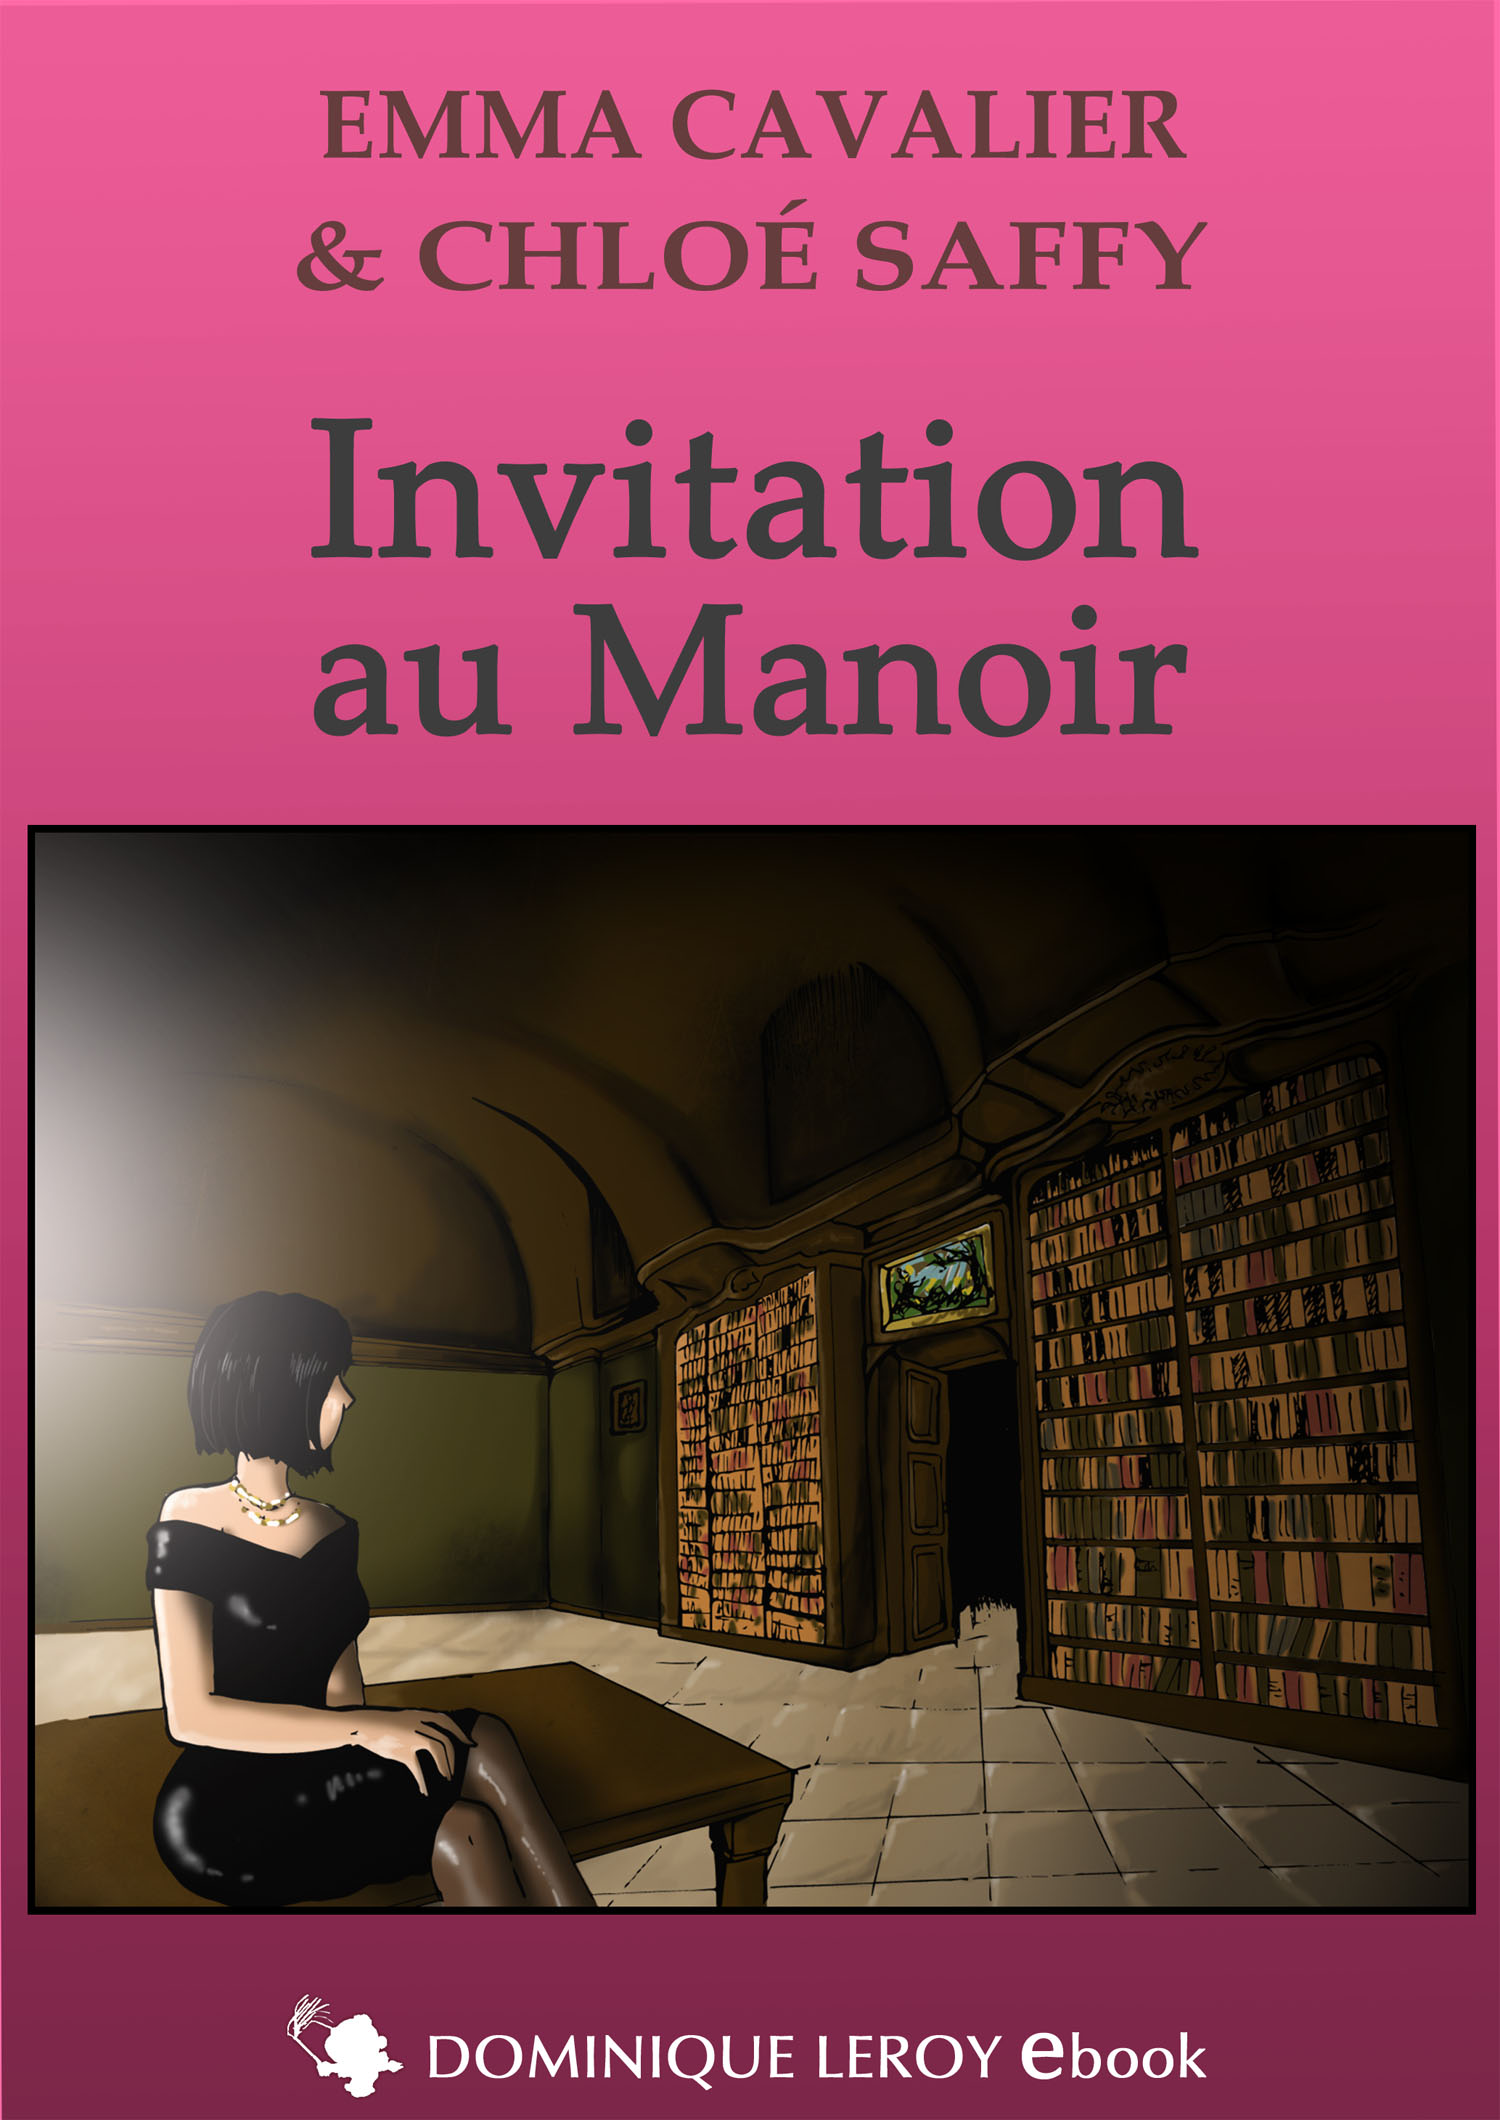 Invitation au manoir